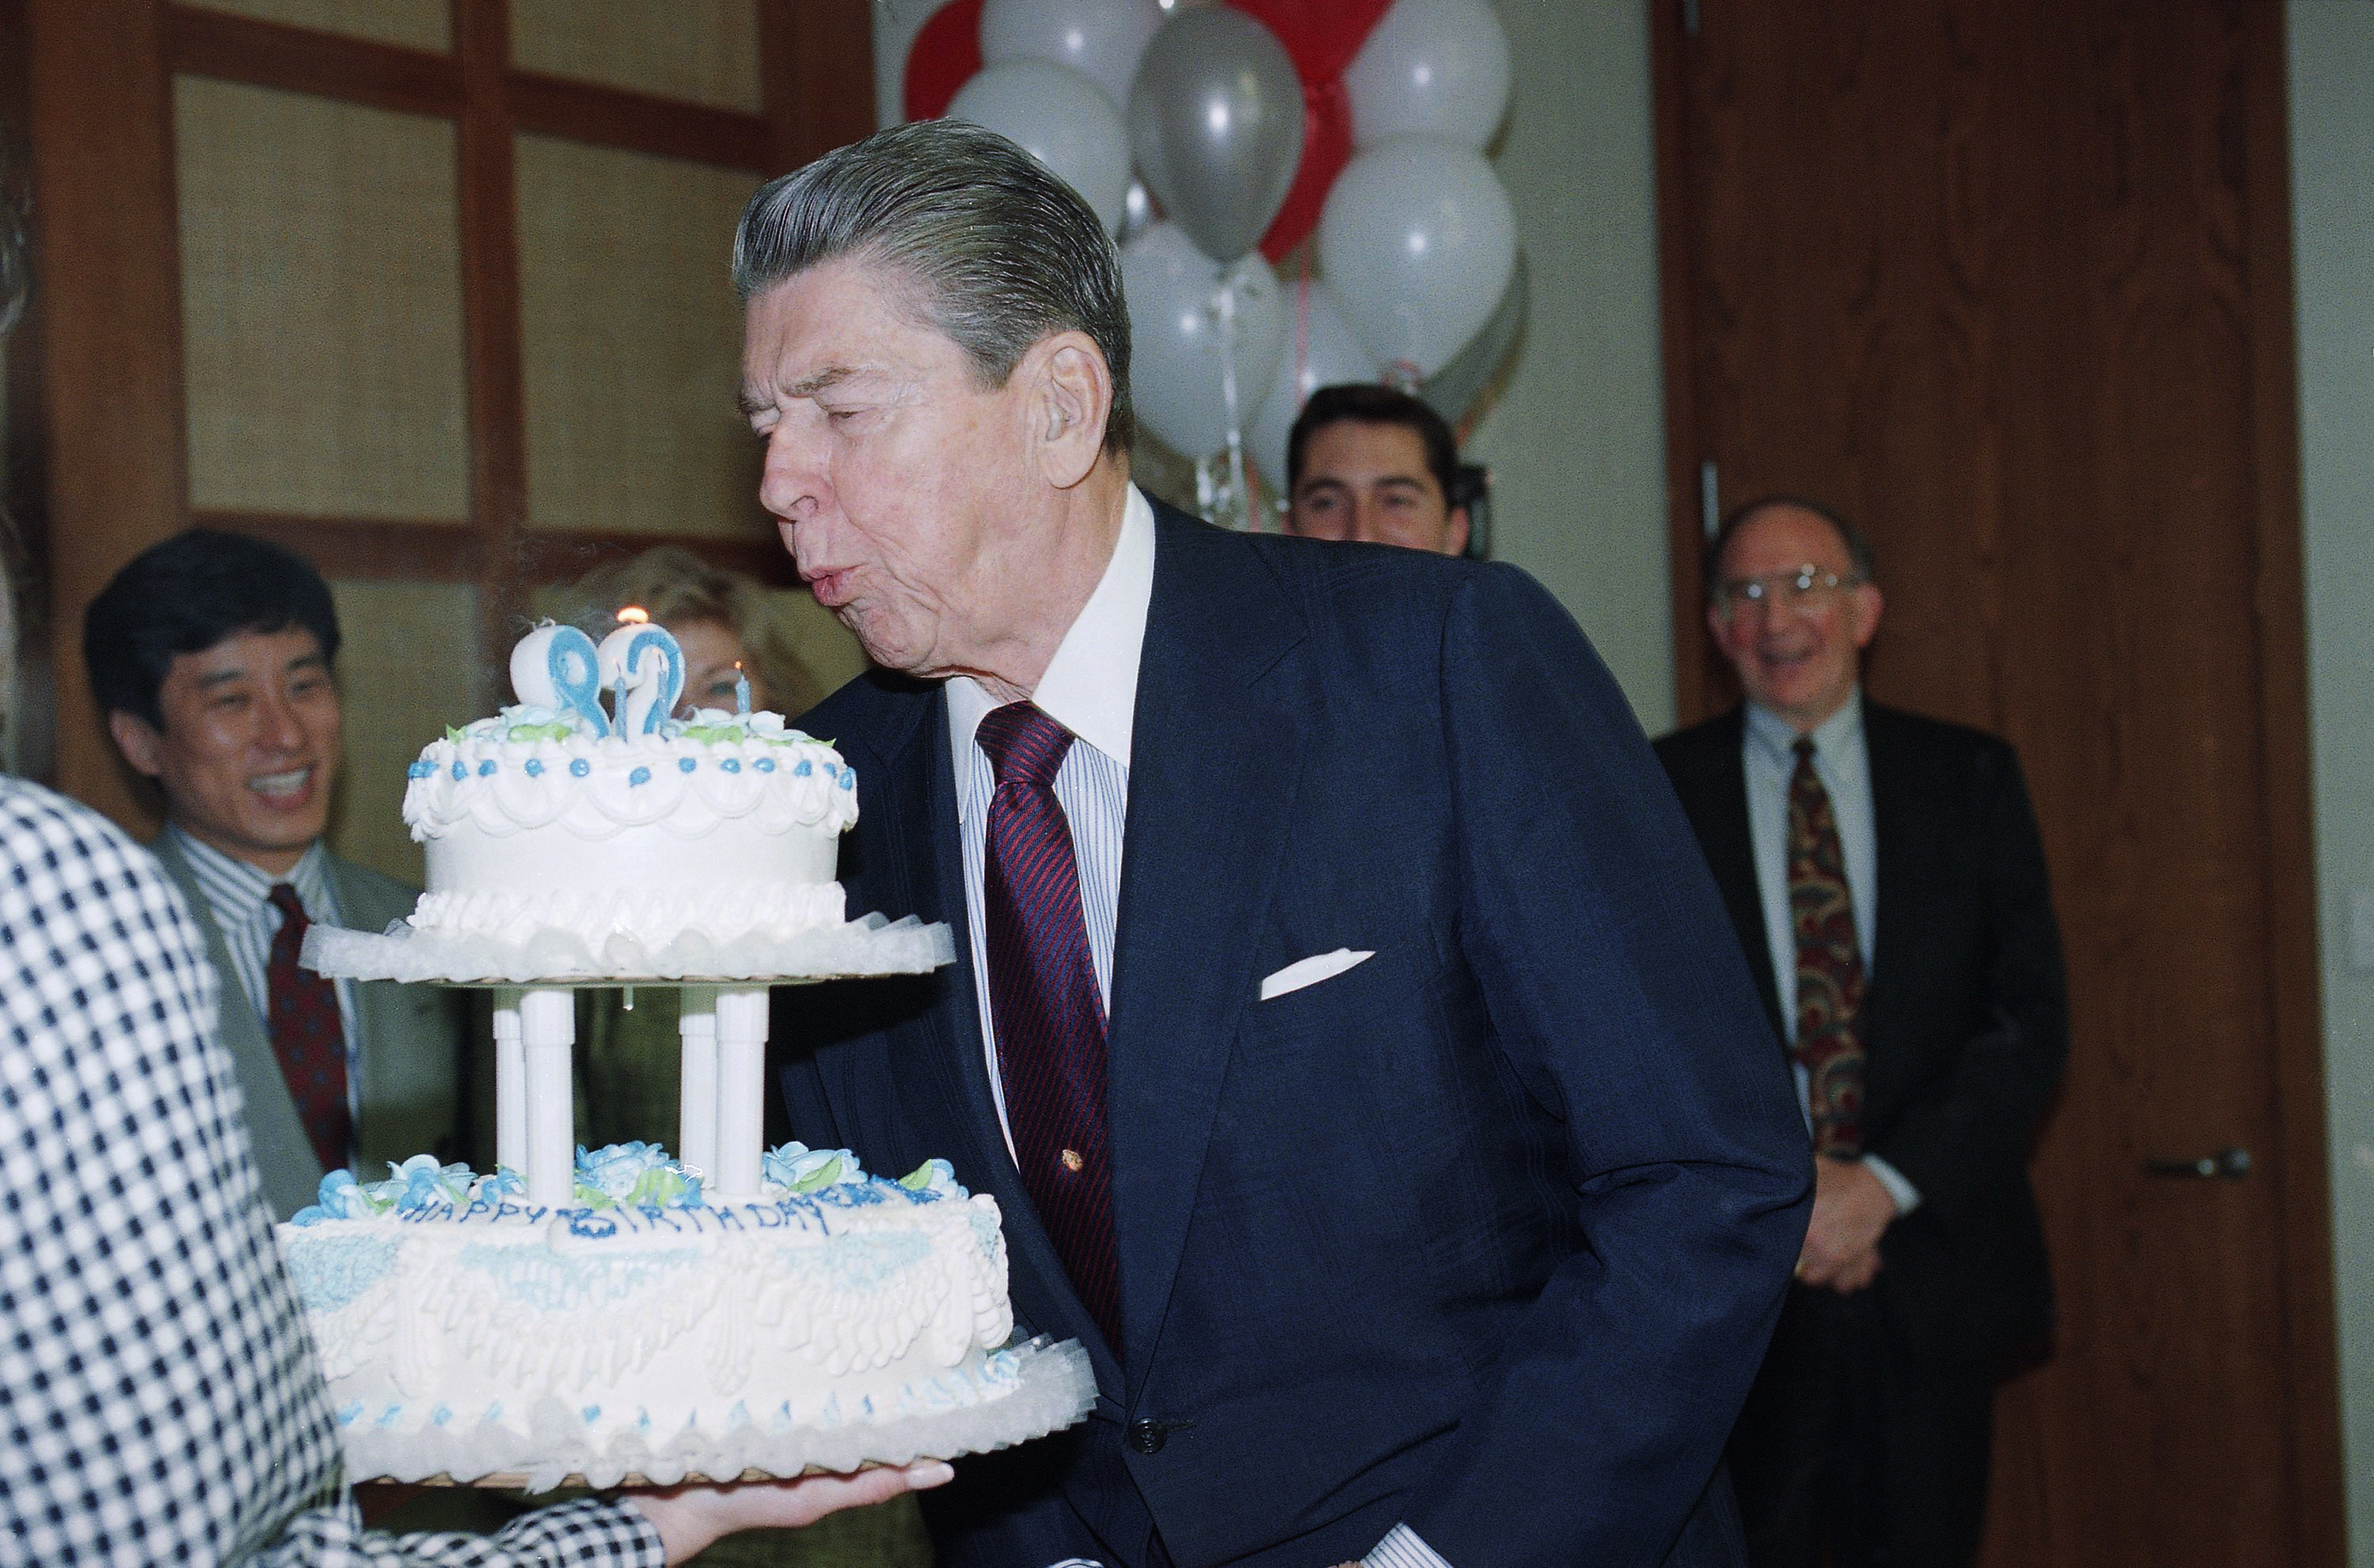 Ronald Reagan blows out a two-tier birthday cake